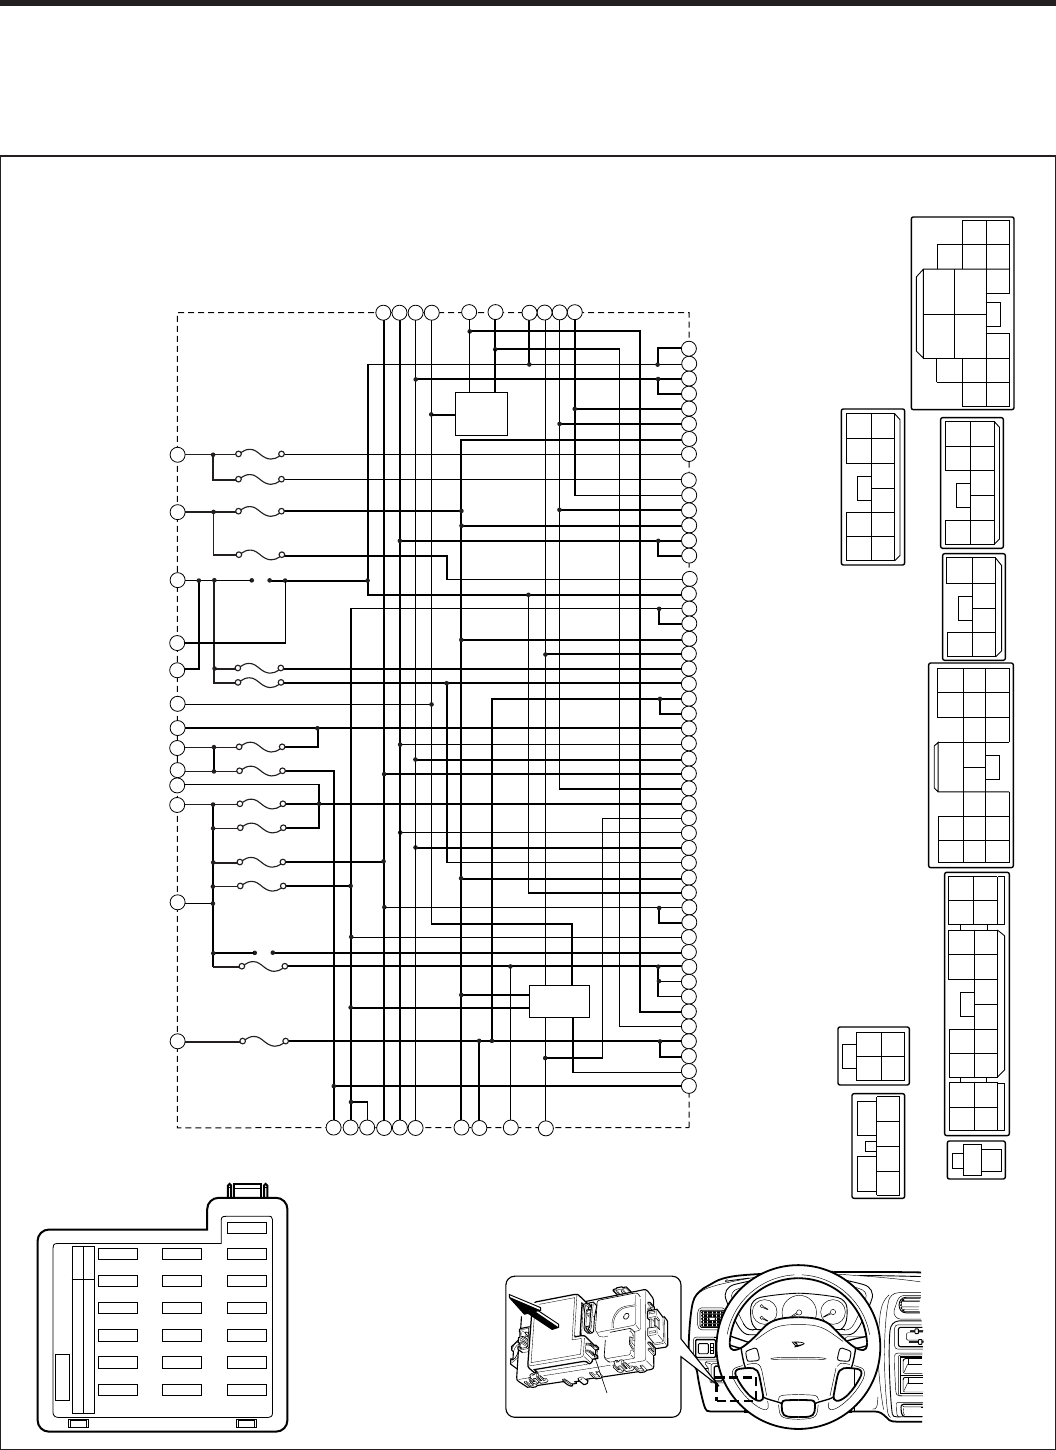 [DIAGRAM] Daihatsu Terios Fuse Box Diagram